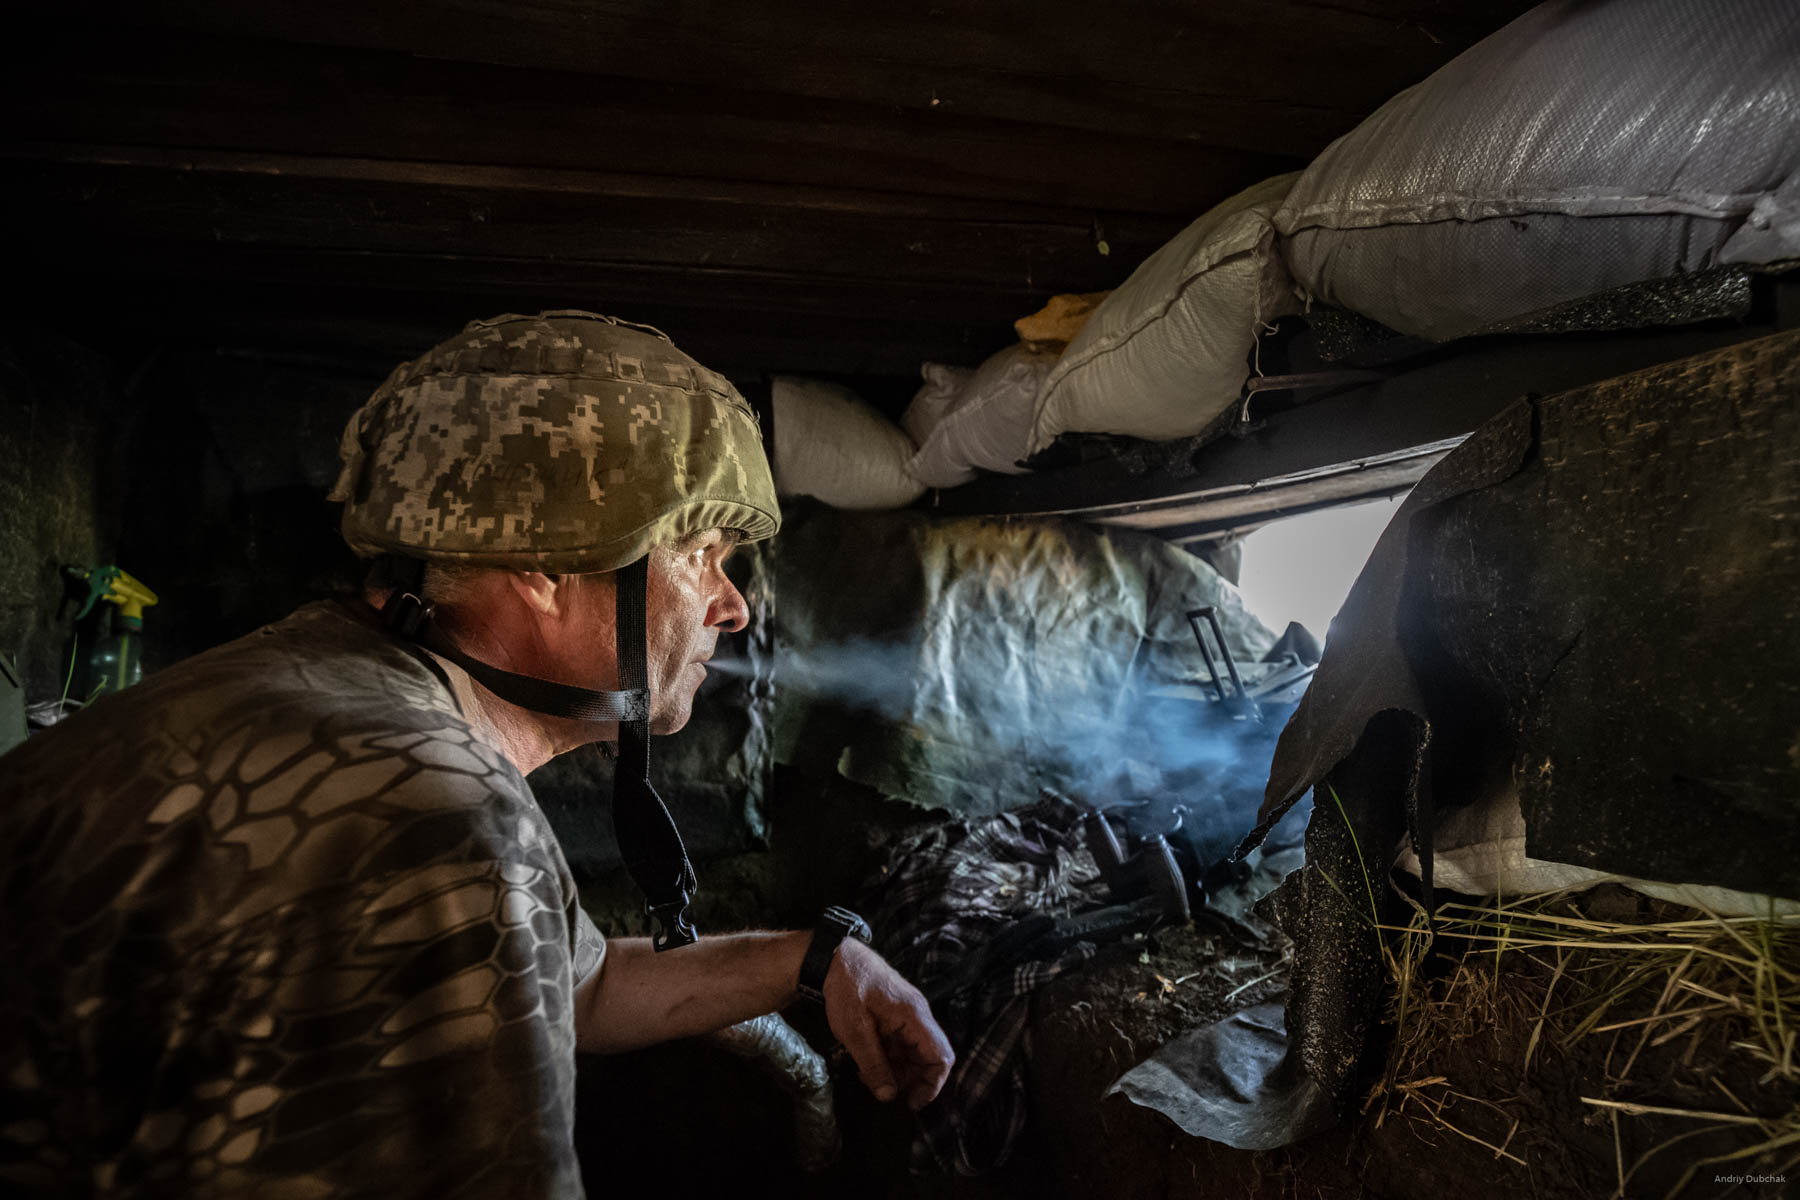 """Ukrainian soldiers use DSHK (large-caliber machine gun) to """"probe"""" enemy in order to reveal his gun emplacements. After a machine gun burst, a 55-years-old warrior soldier named «Svarschik» from Dnepr observes enemy gun emplacements. After the firefight, he says, """"I am a pipe welder. I could have been welding a pipe in Norway, but I am here."""" Settlement Pivdenne, near Gorlivka on June, 17th, 2018"""